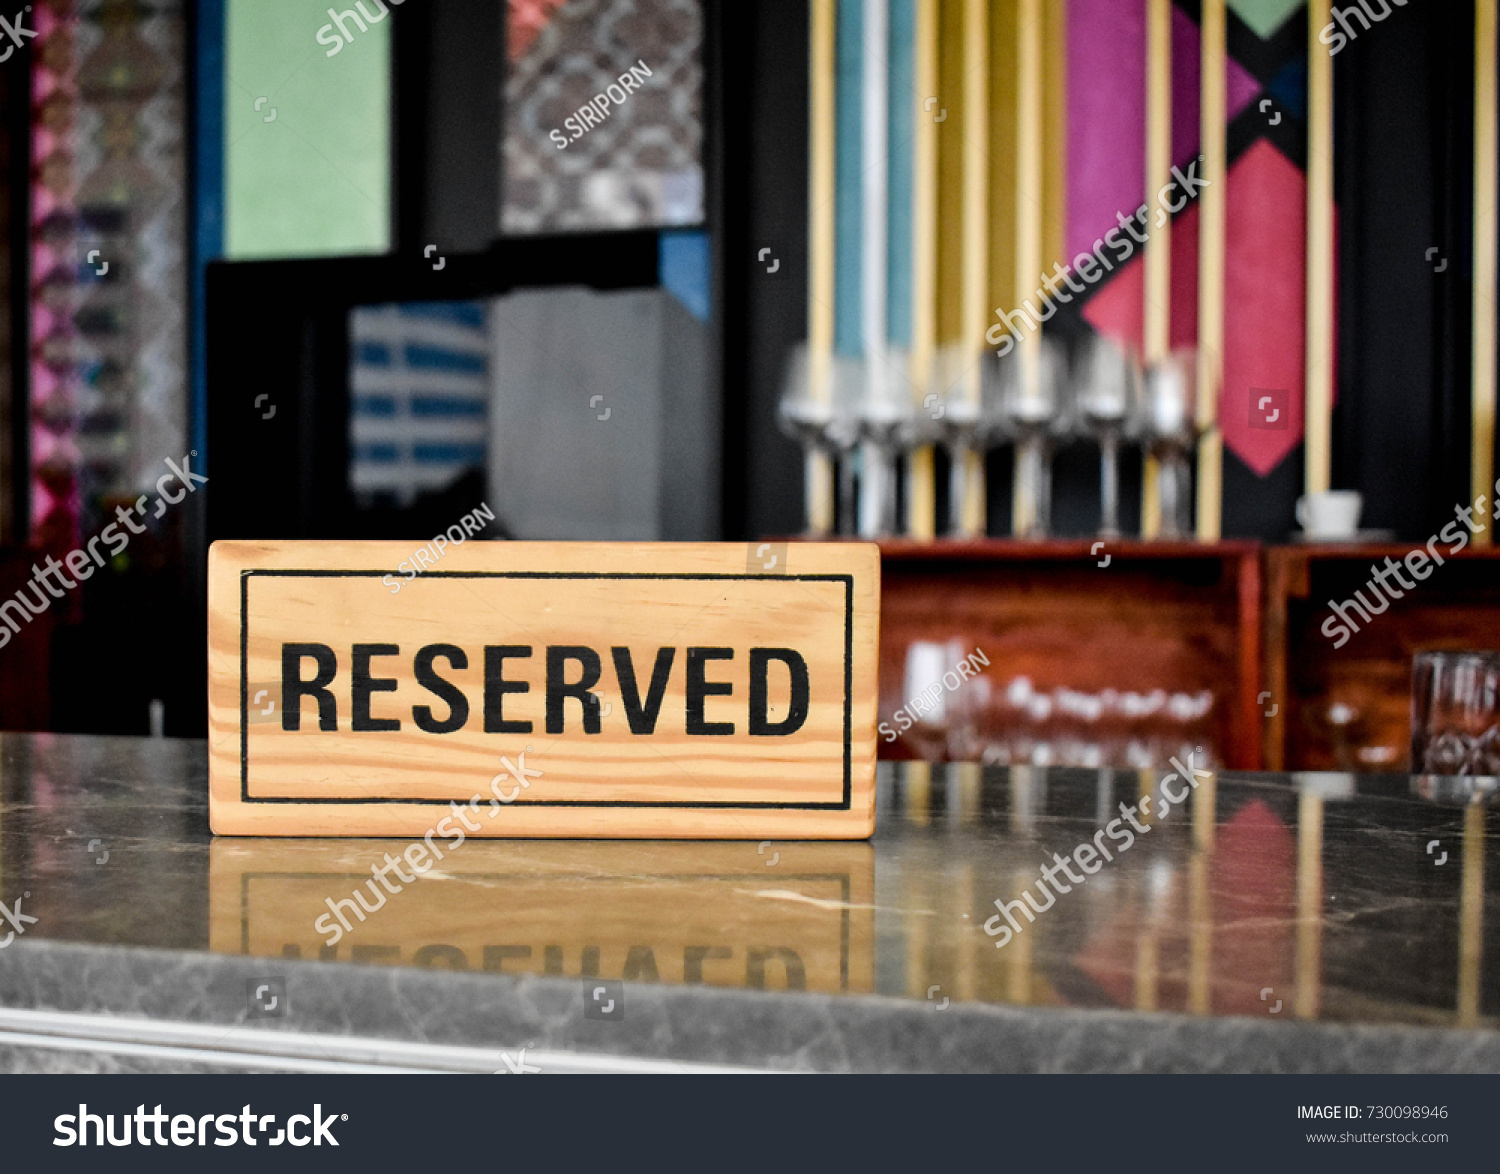 reserved dating